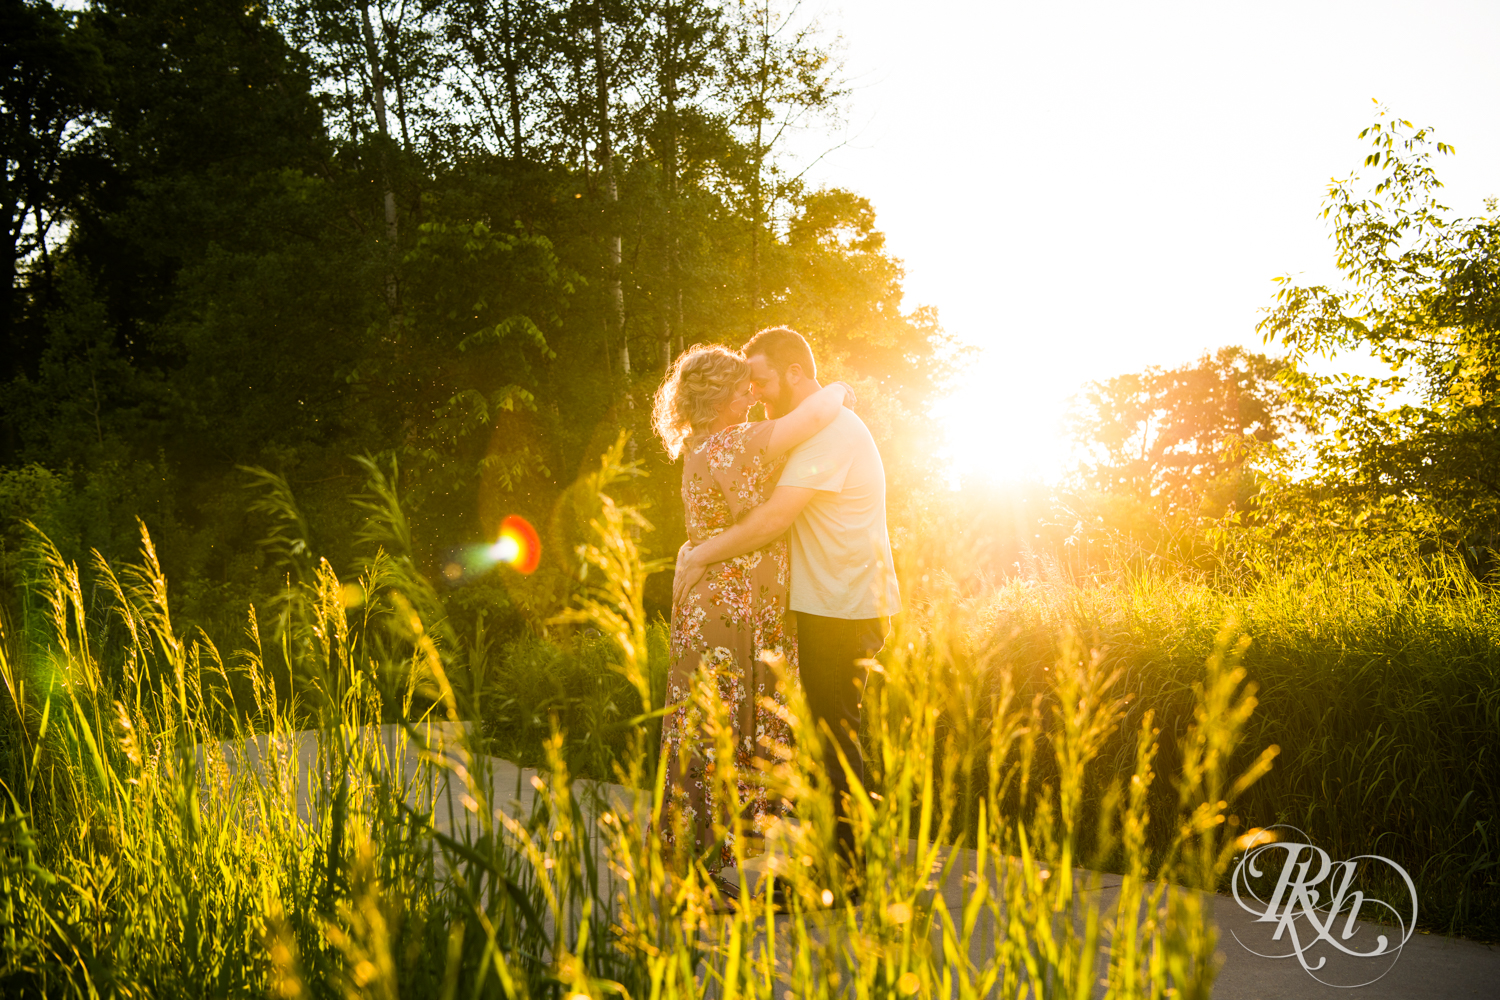 Constance & Josh - Minnesota Engagement Photography - Lebanon Hills Regional Park - RKH Images - Blog (11 of 18).jpg